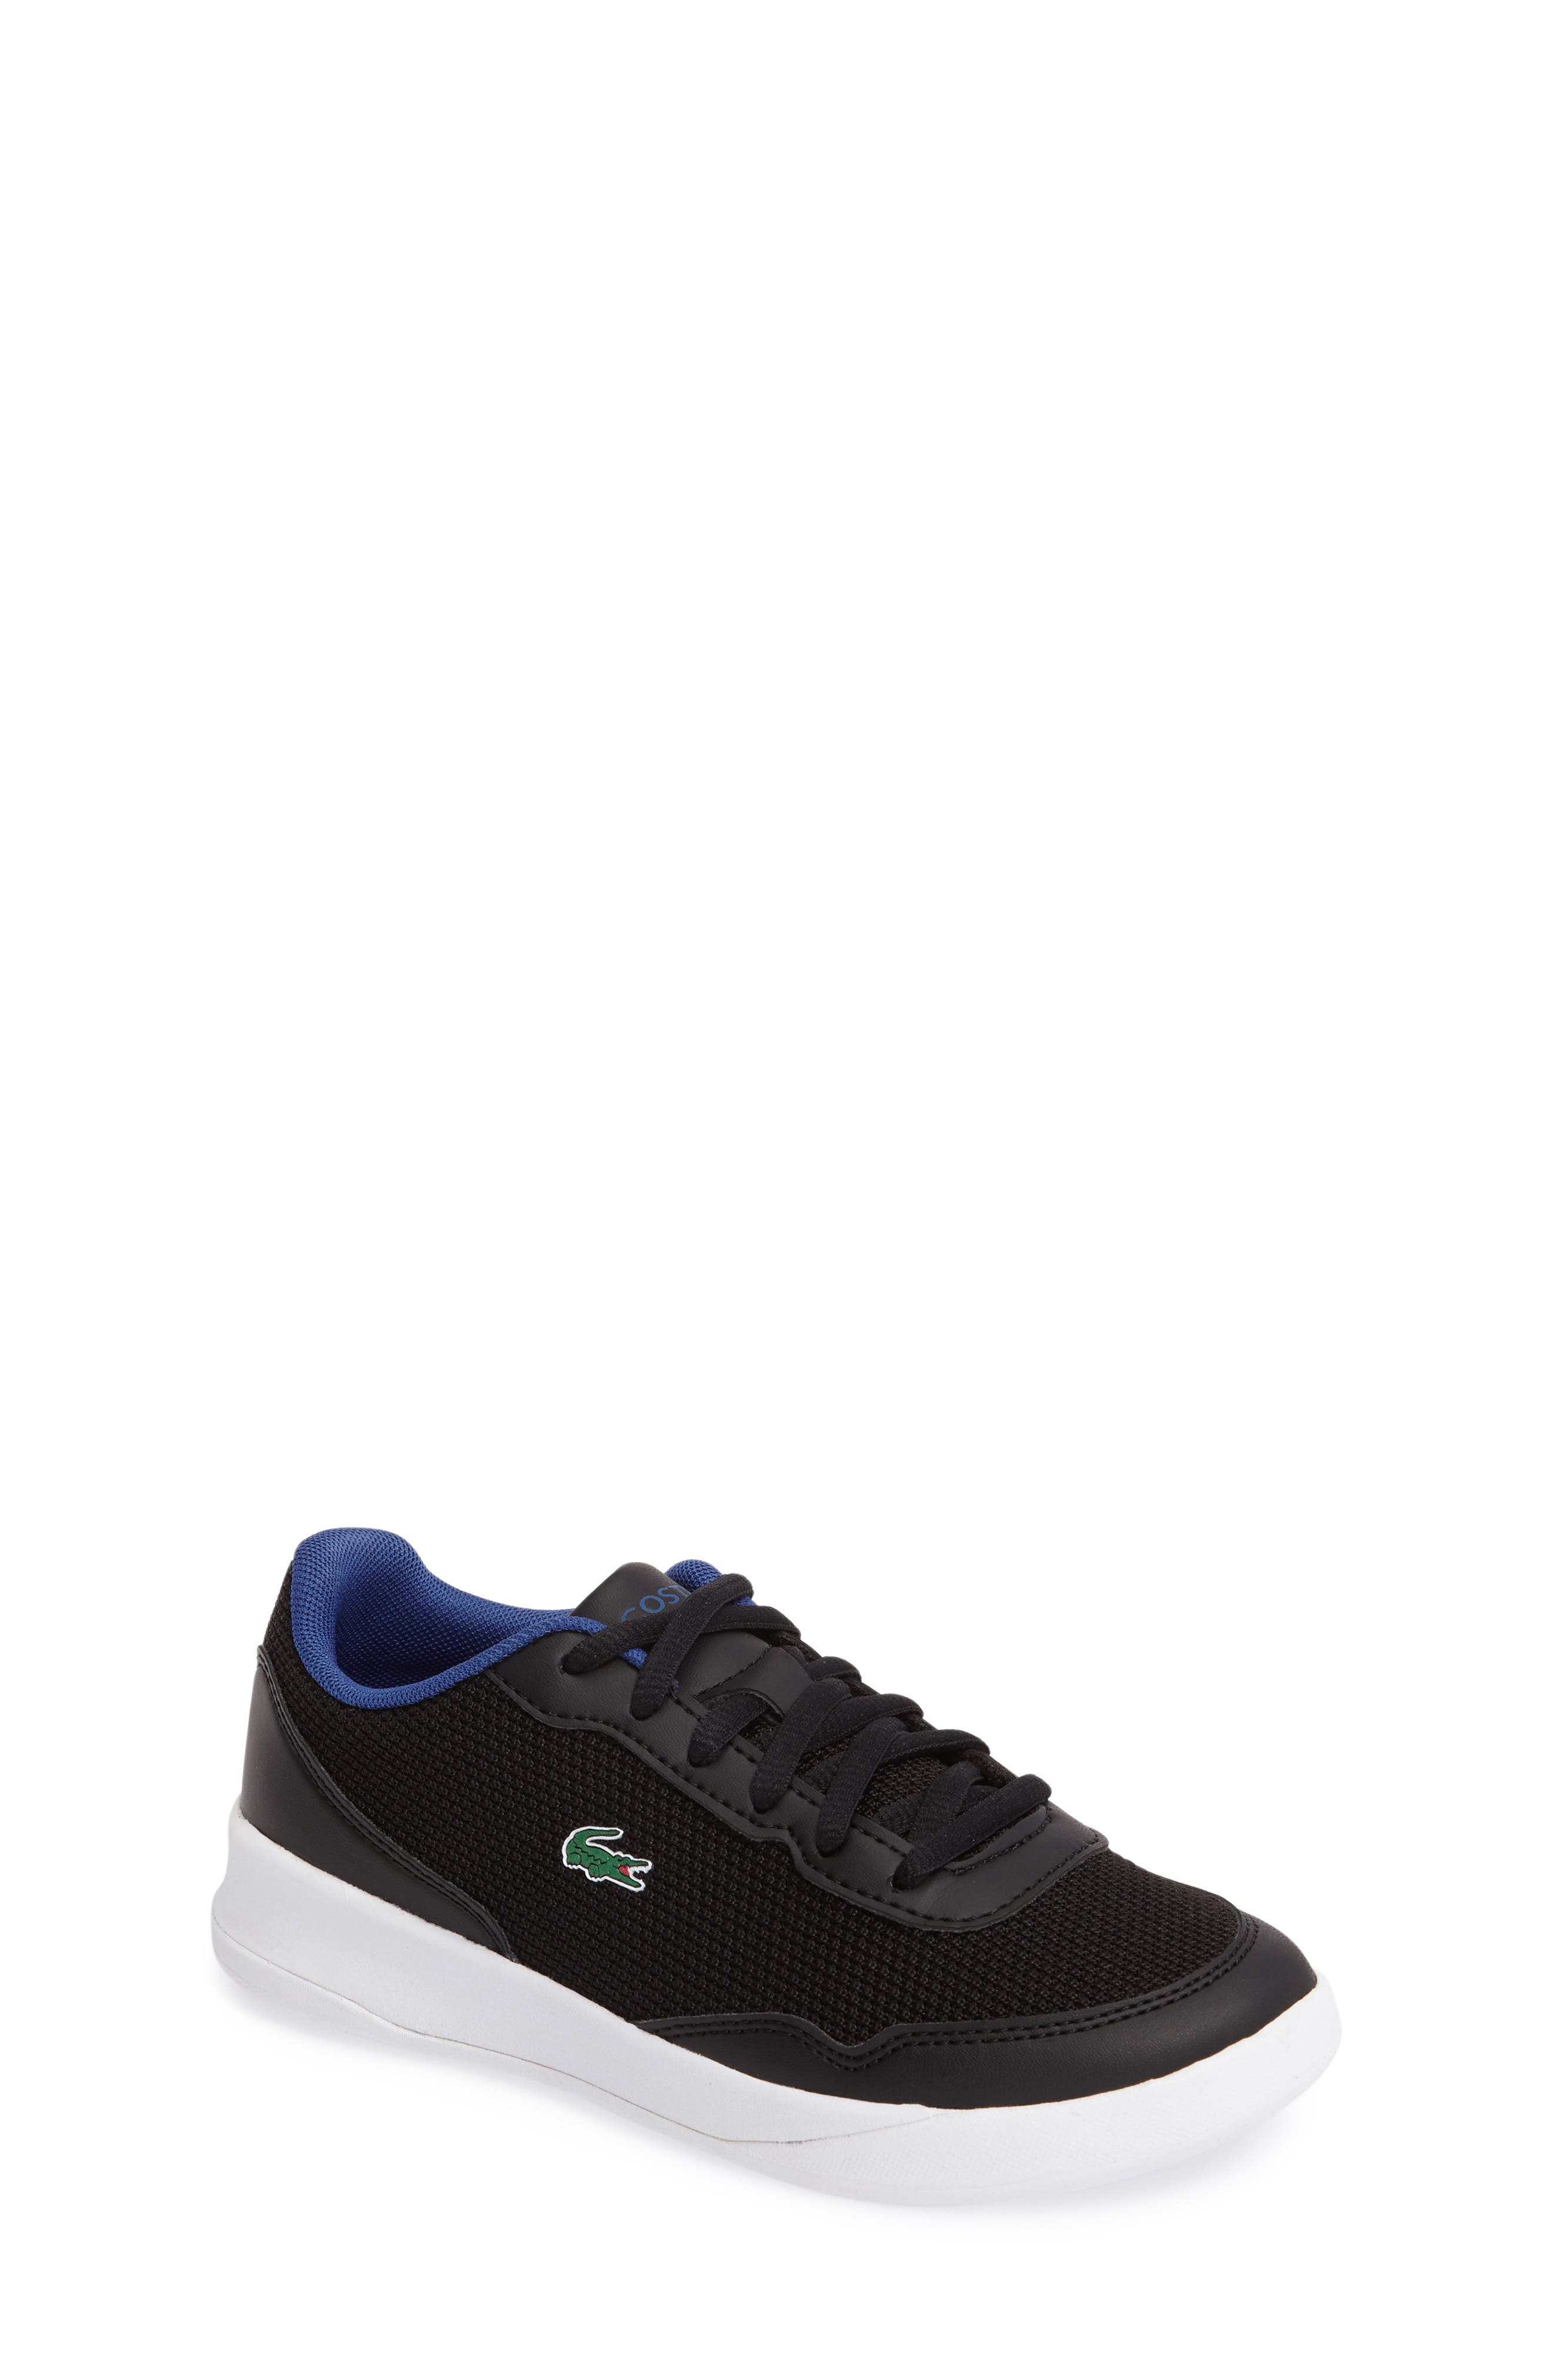 Main Image - Lacoste LT Spirit Woven Sneaker (Toddler & Little Kid)